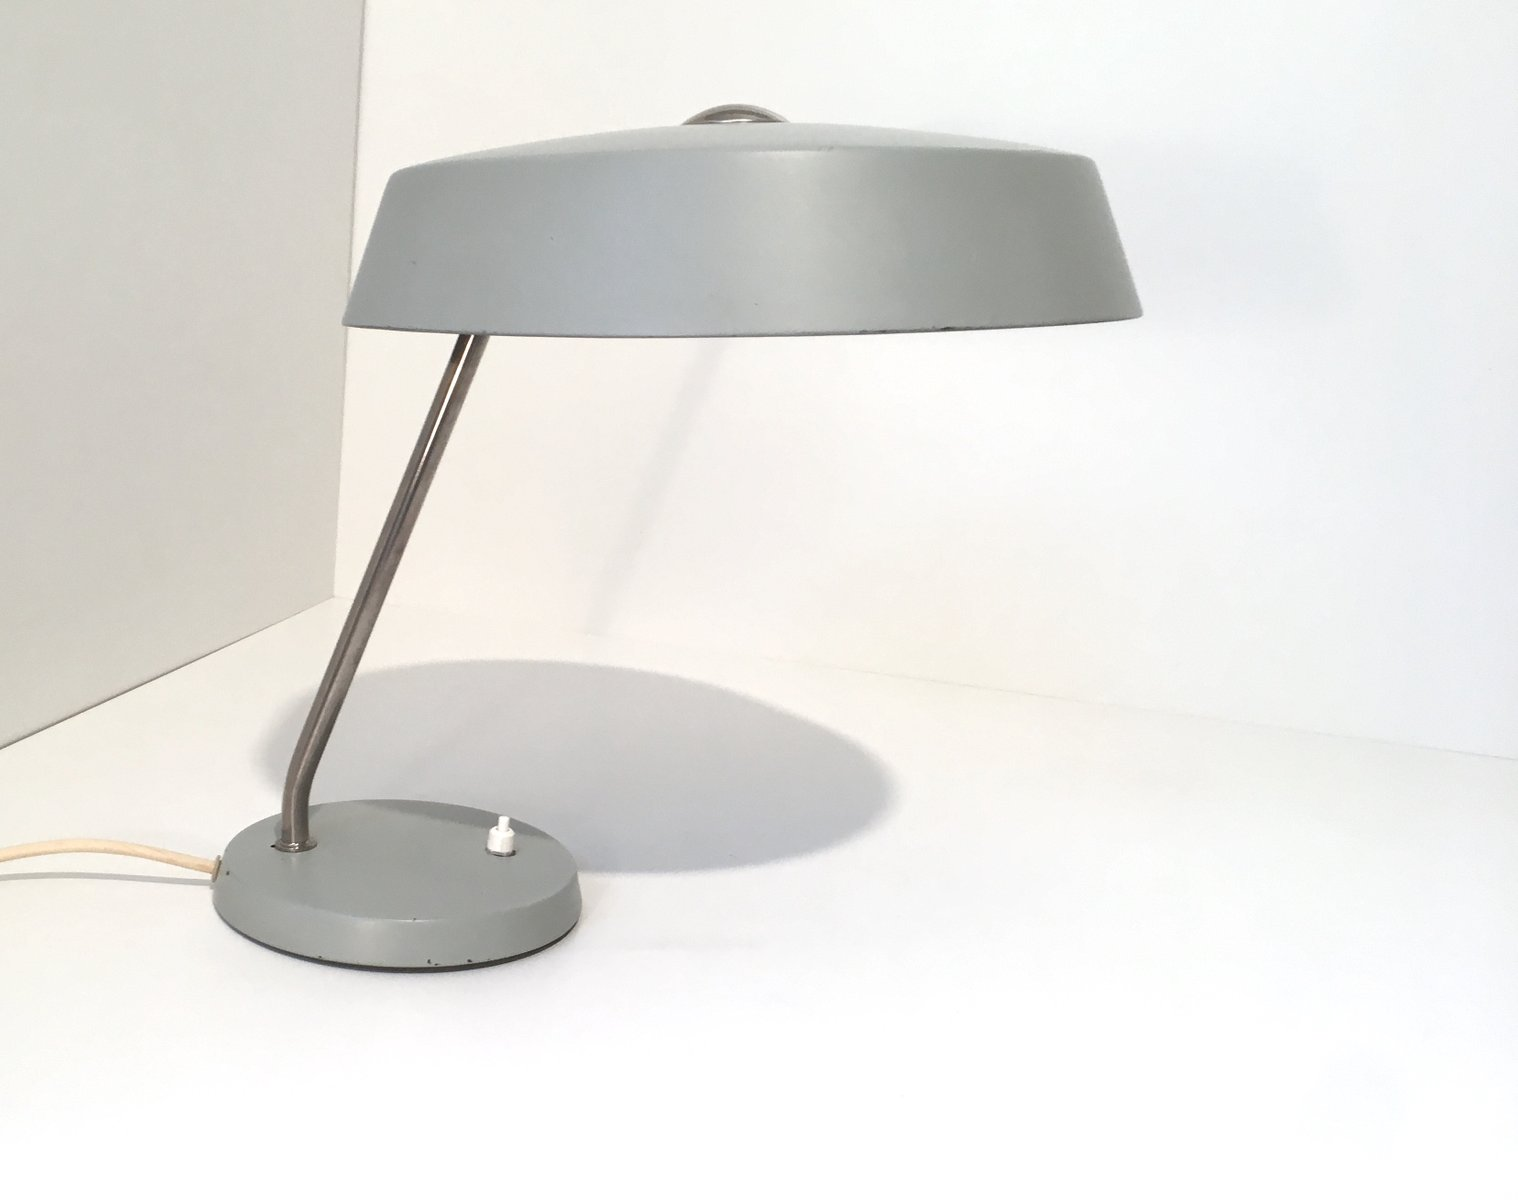 Gray bauhaus table lamp 1960s for sale at pamono gray bauhaus table lamp 1960s aloadofball Image collections